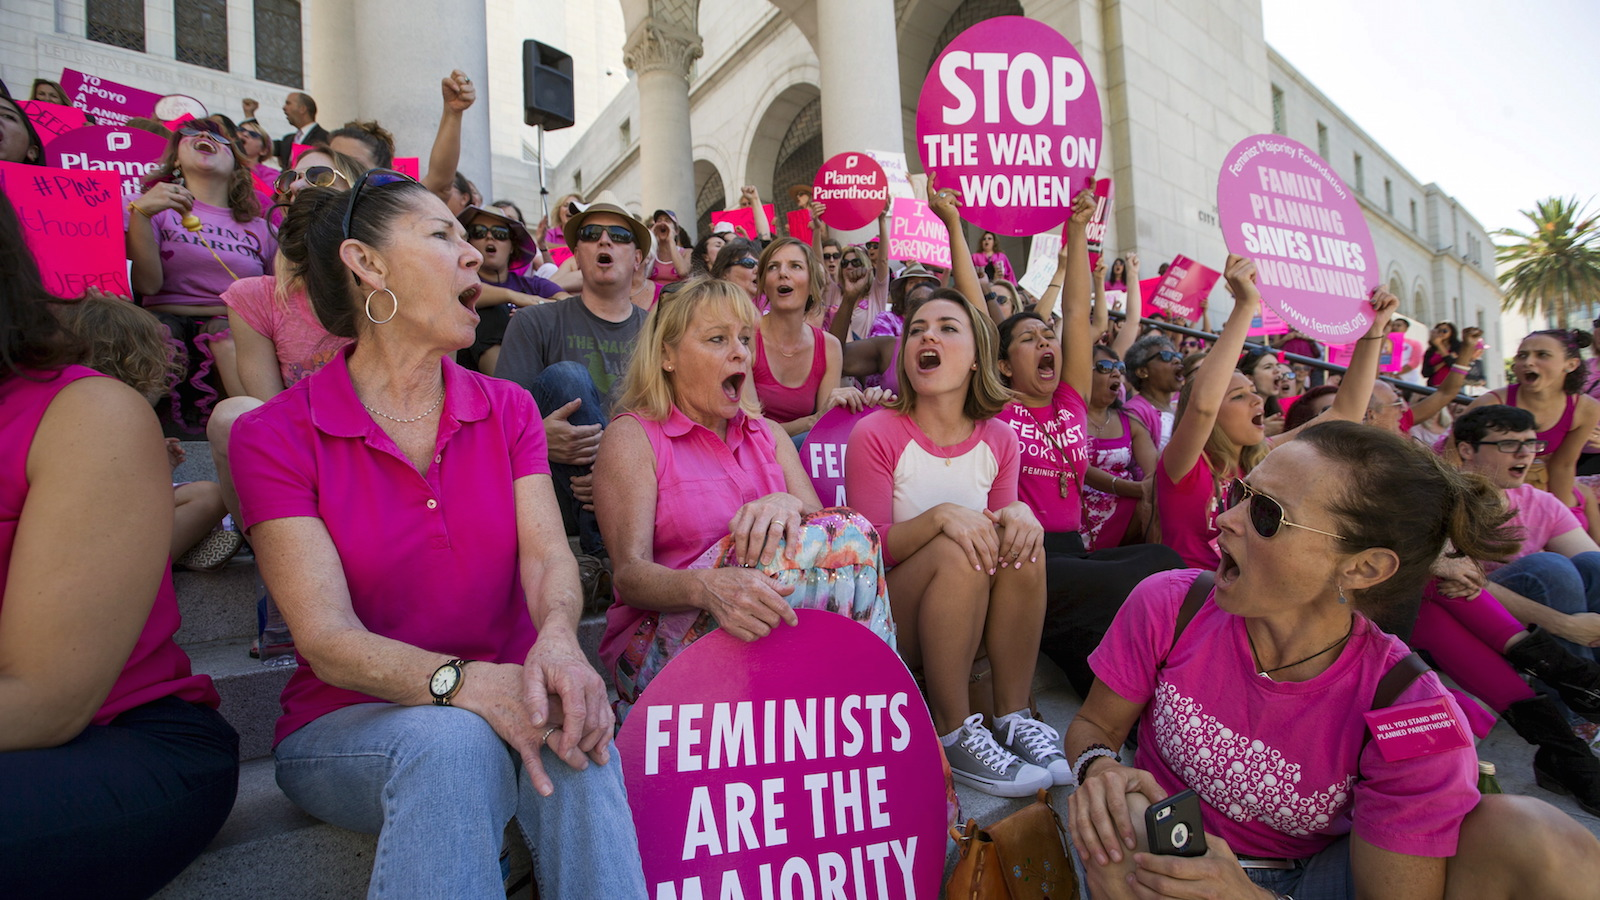 """Activists chant as they rally in support of Planned Parenthood on """"National Pink Out Day"""" on the steps of City Hall in Los Angeles, California September 29, 2015. U.S. Congressional Republicans on Tuesday challenged Planned Parenthood's eligibility for federal funds, while the health organization's president said defunding it would restrict women's access to care and disproportionately hurt low-income patients. REUTERS/Mario Anzuoni - RTS2C4S"""